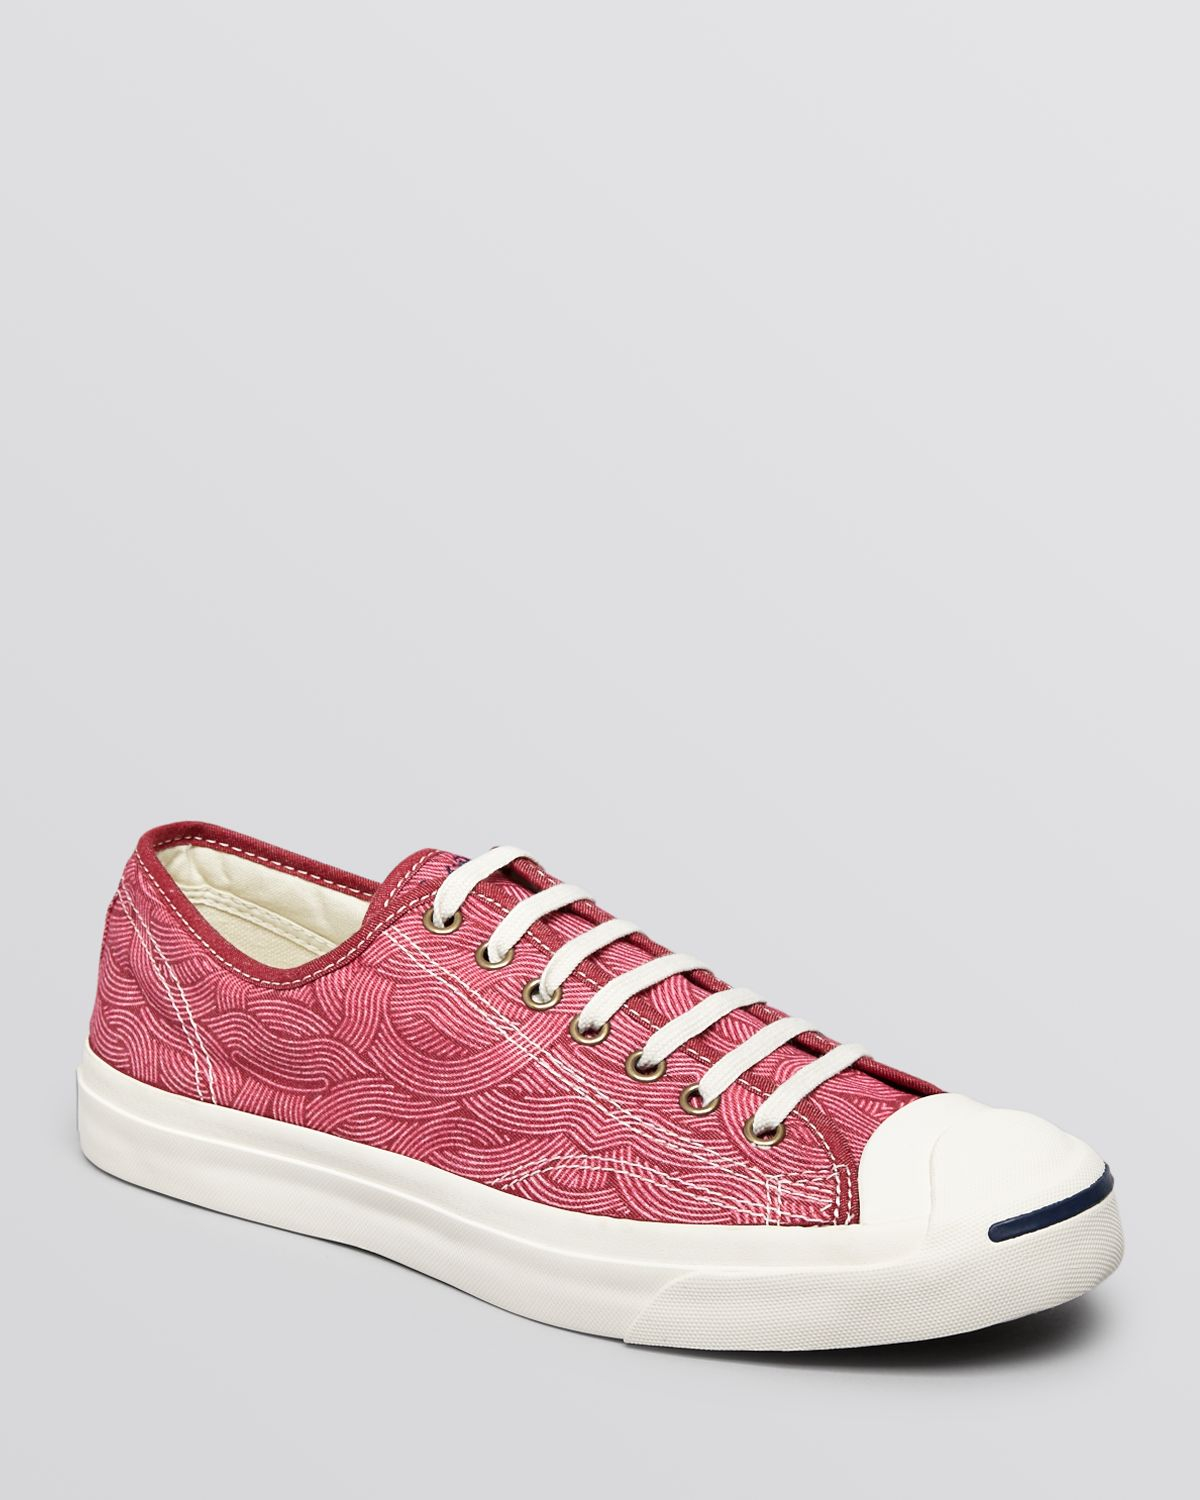 9abbd171a846 Lyst - Converse Jack Purcell Multi Pattern Sneakers in Pink for Men